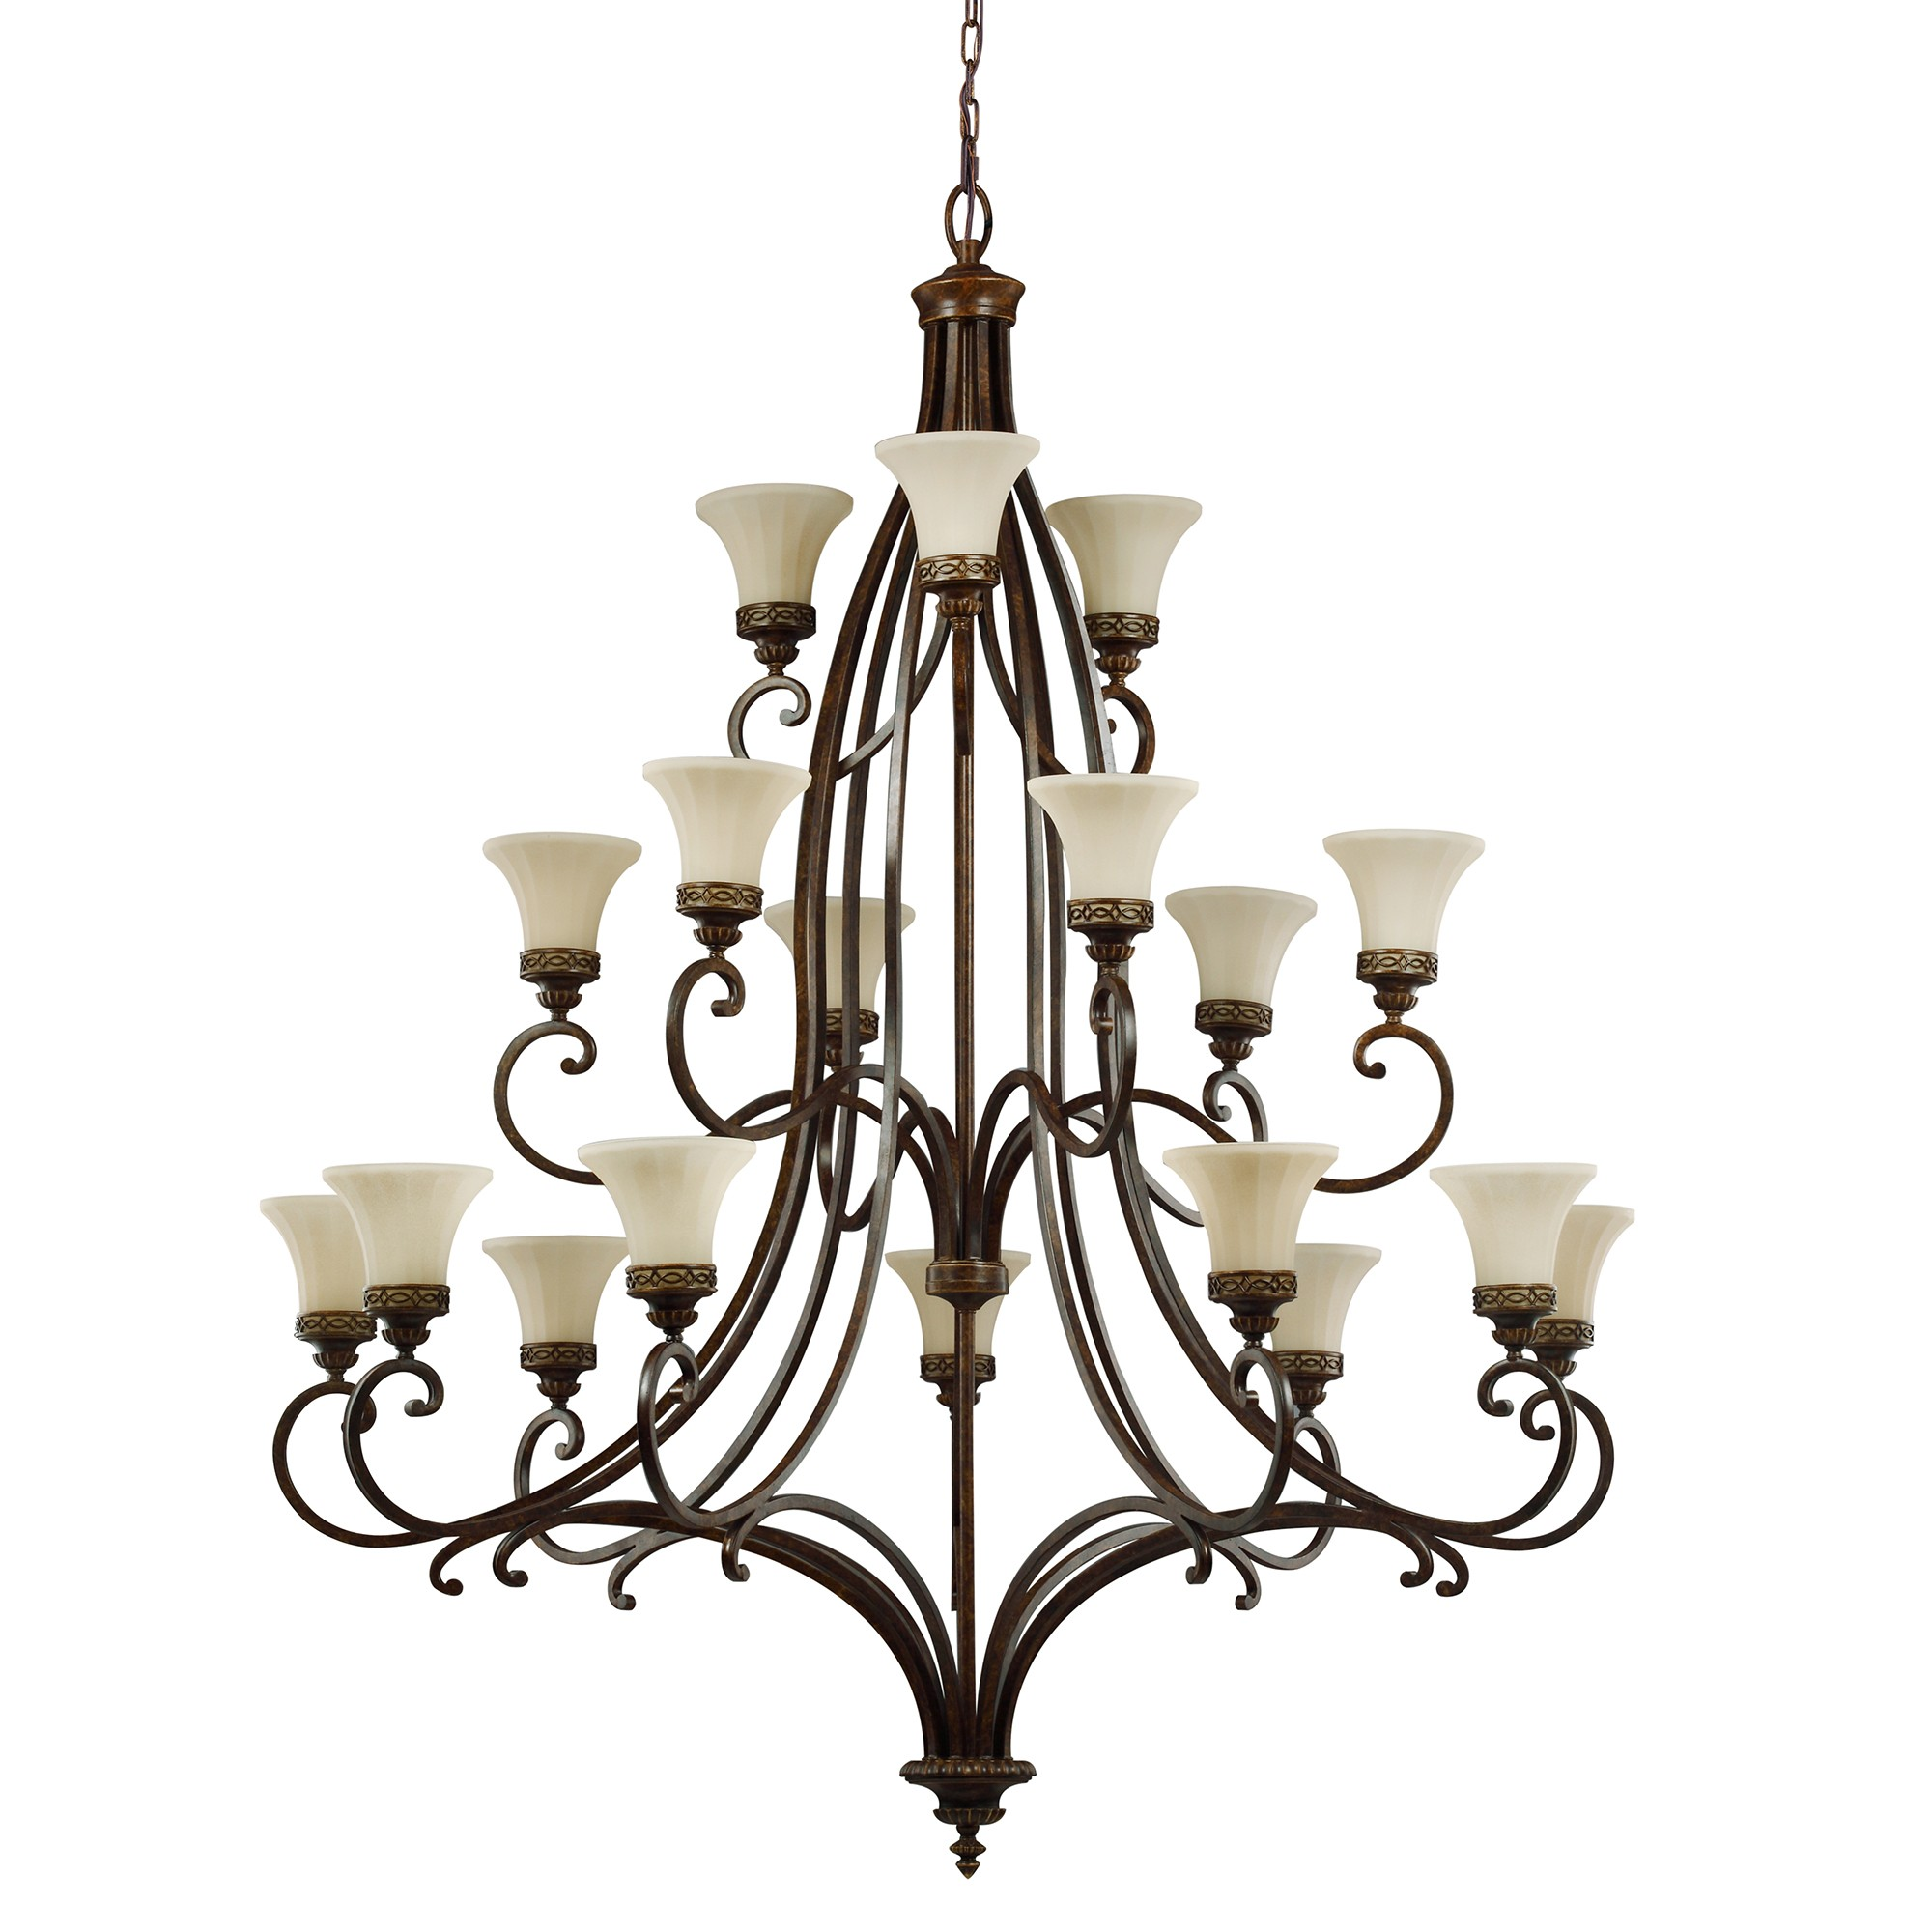 2000x2000 Drawing Room 18 Light Chandelier Ceiling Fitting